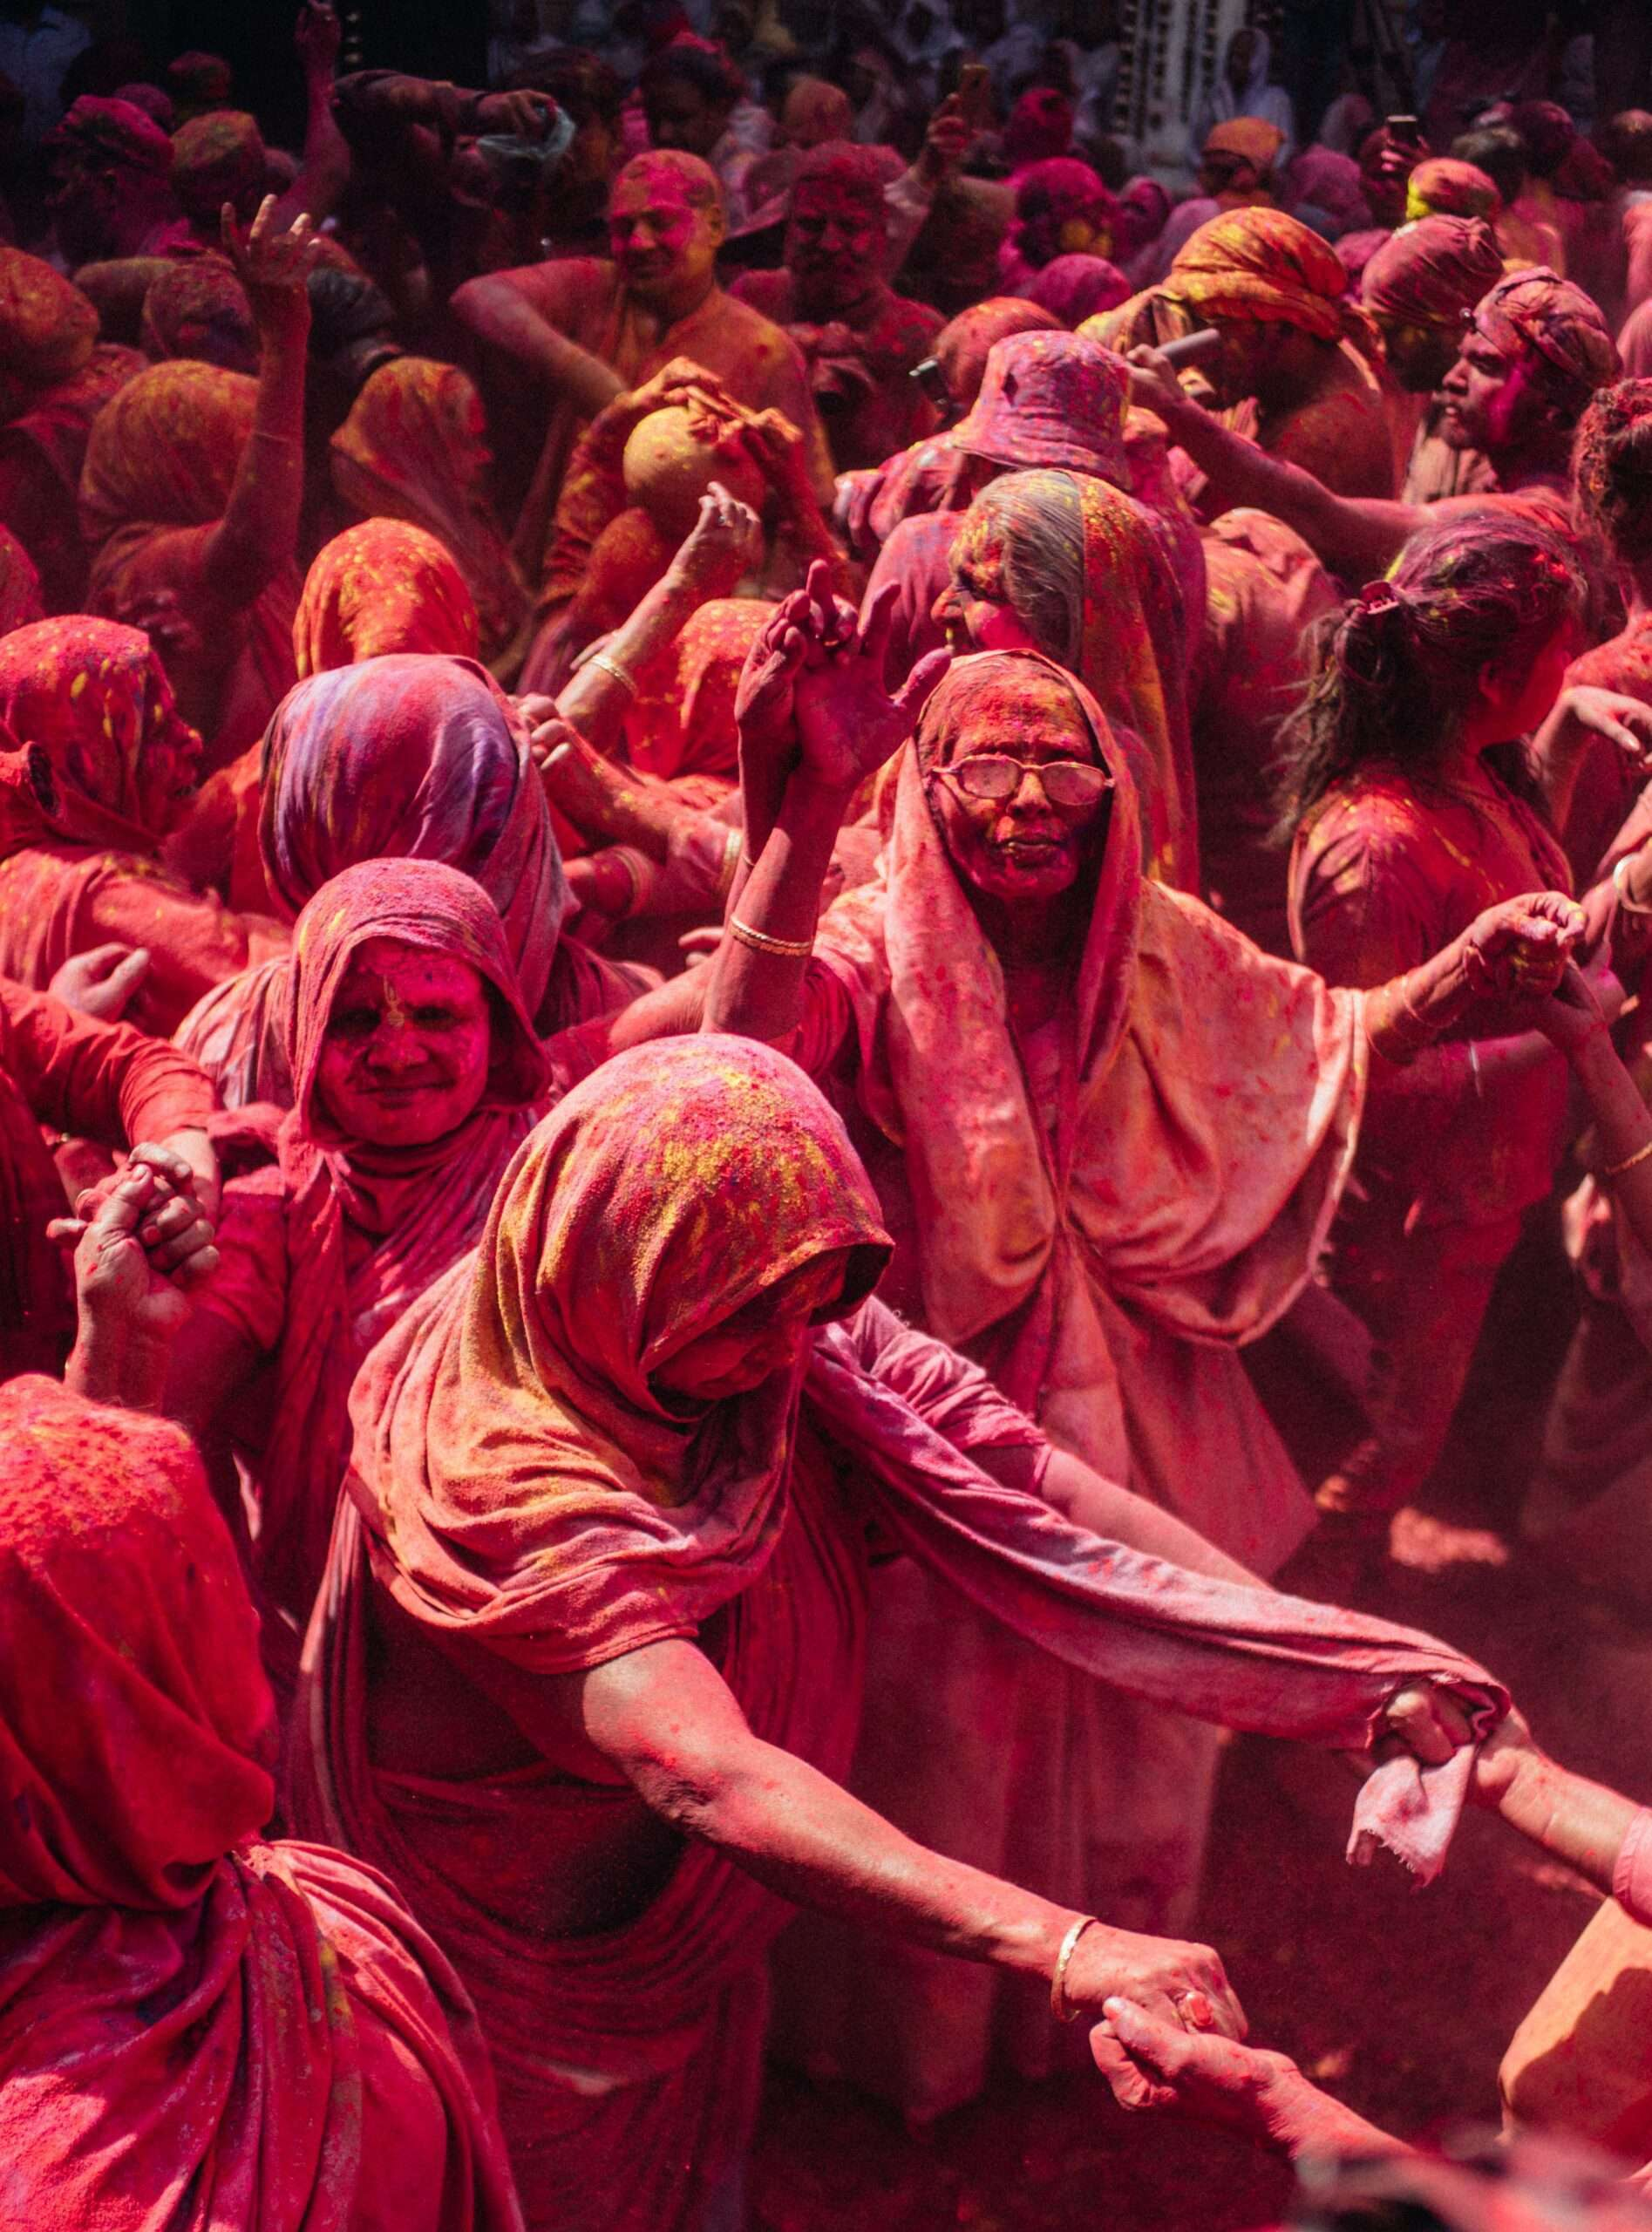 Dozens of people gather to celebrate the colourful festival of Holi in India